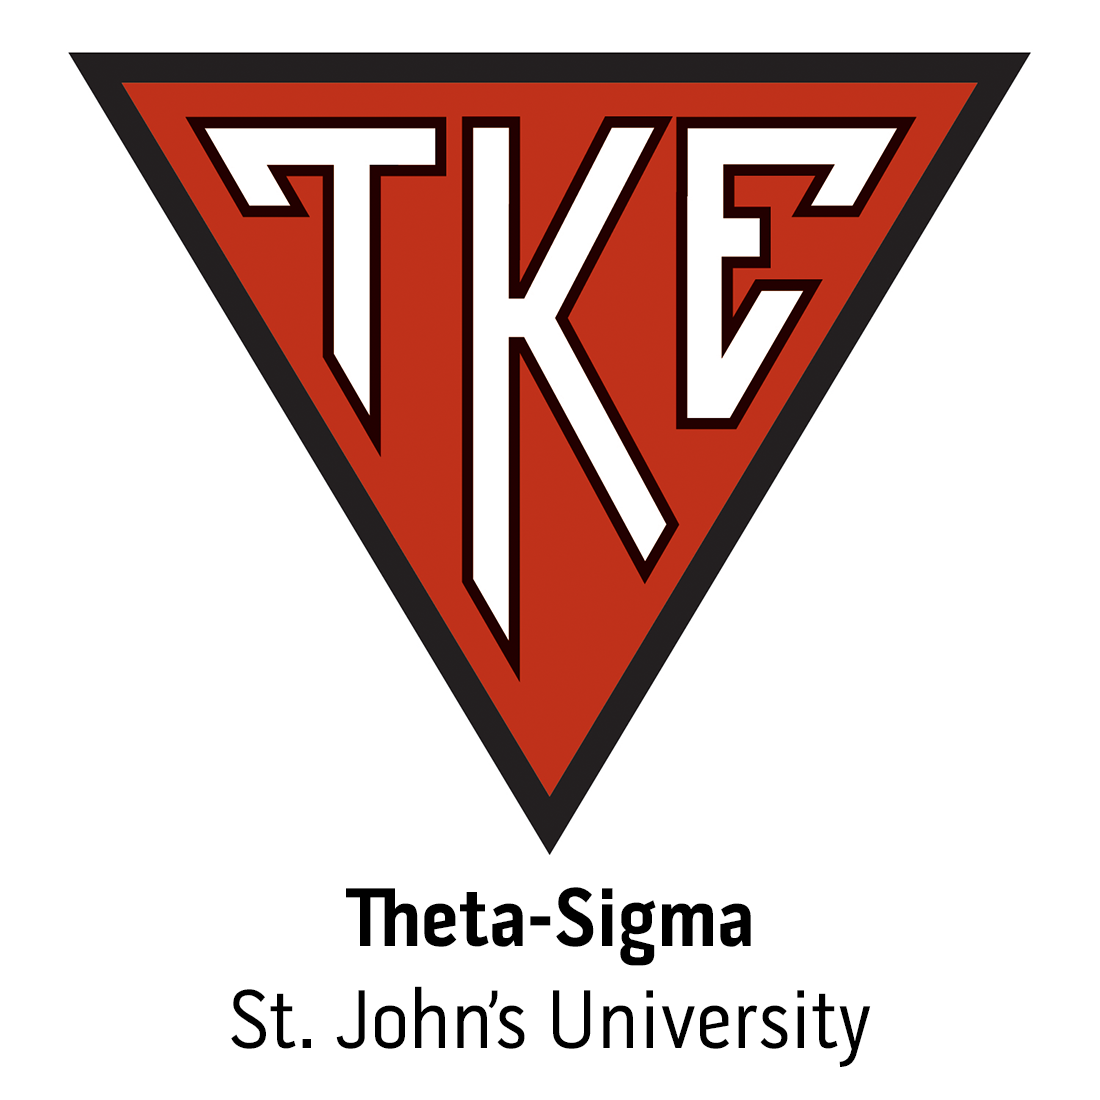 Theta-Sigma Chapter at St. John's University